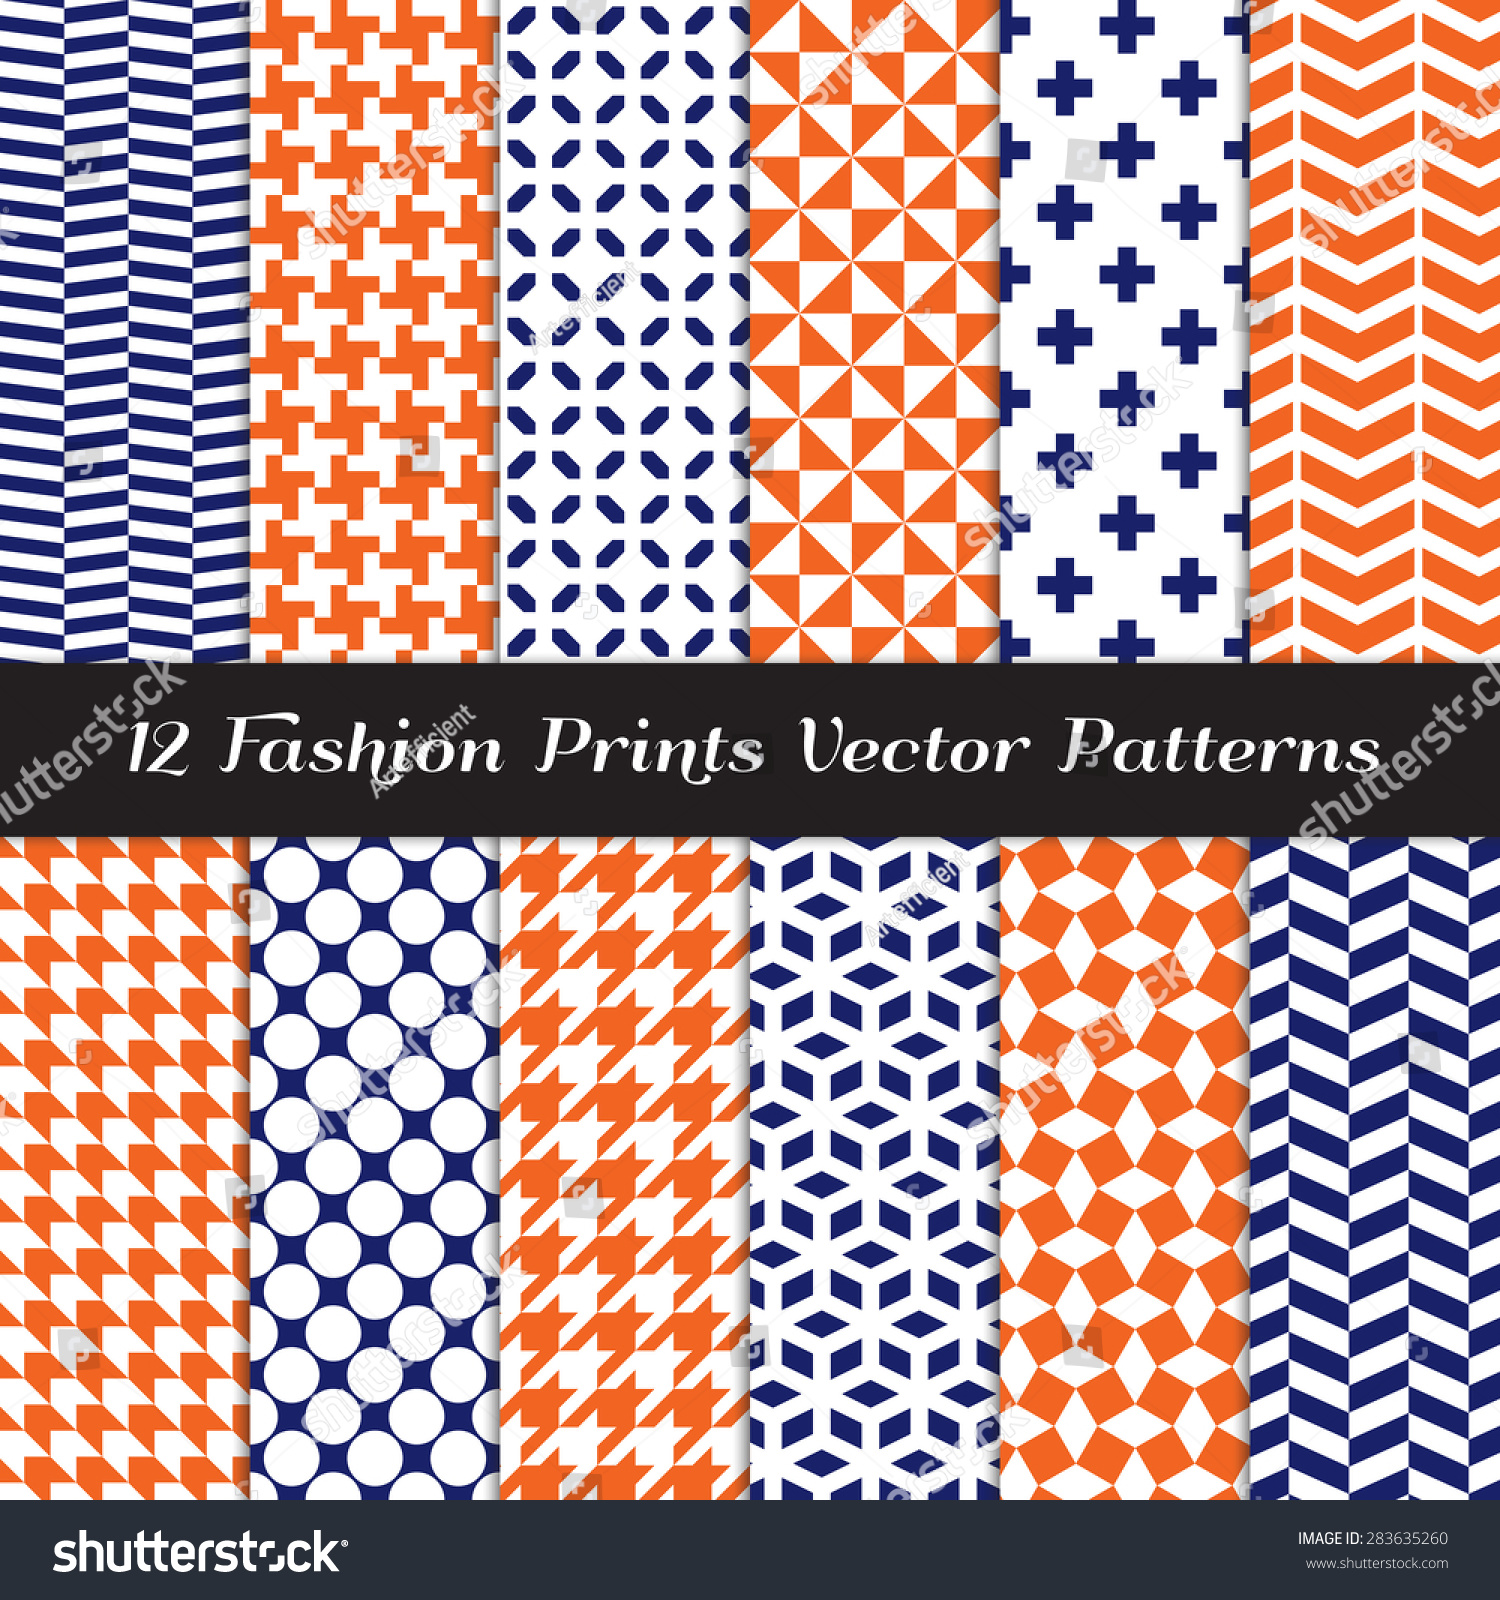 Fashion Patterns Cool Design Ideas